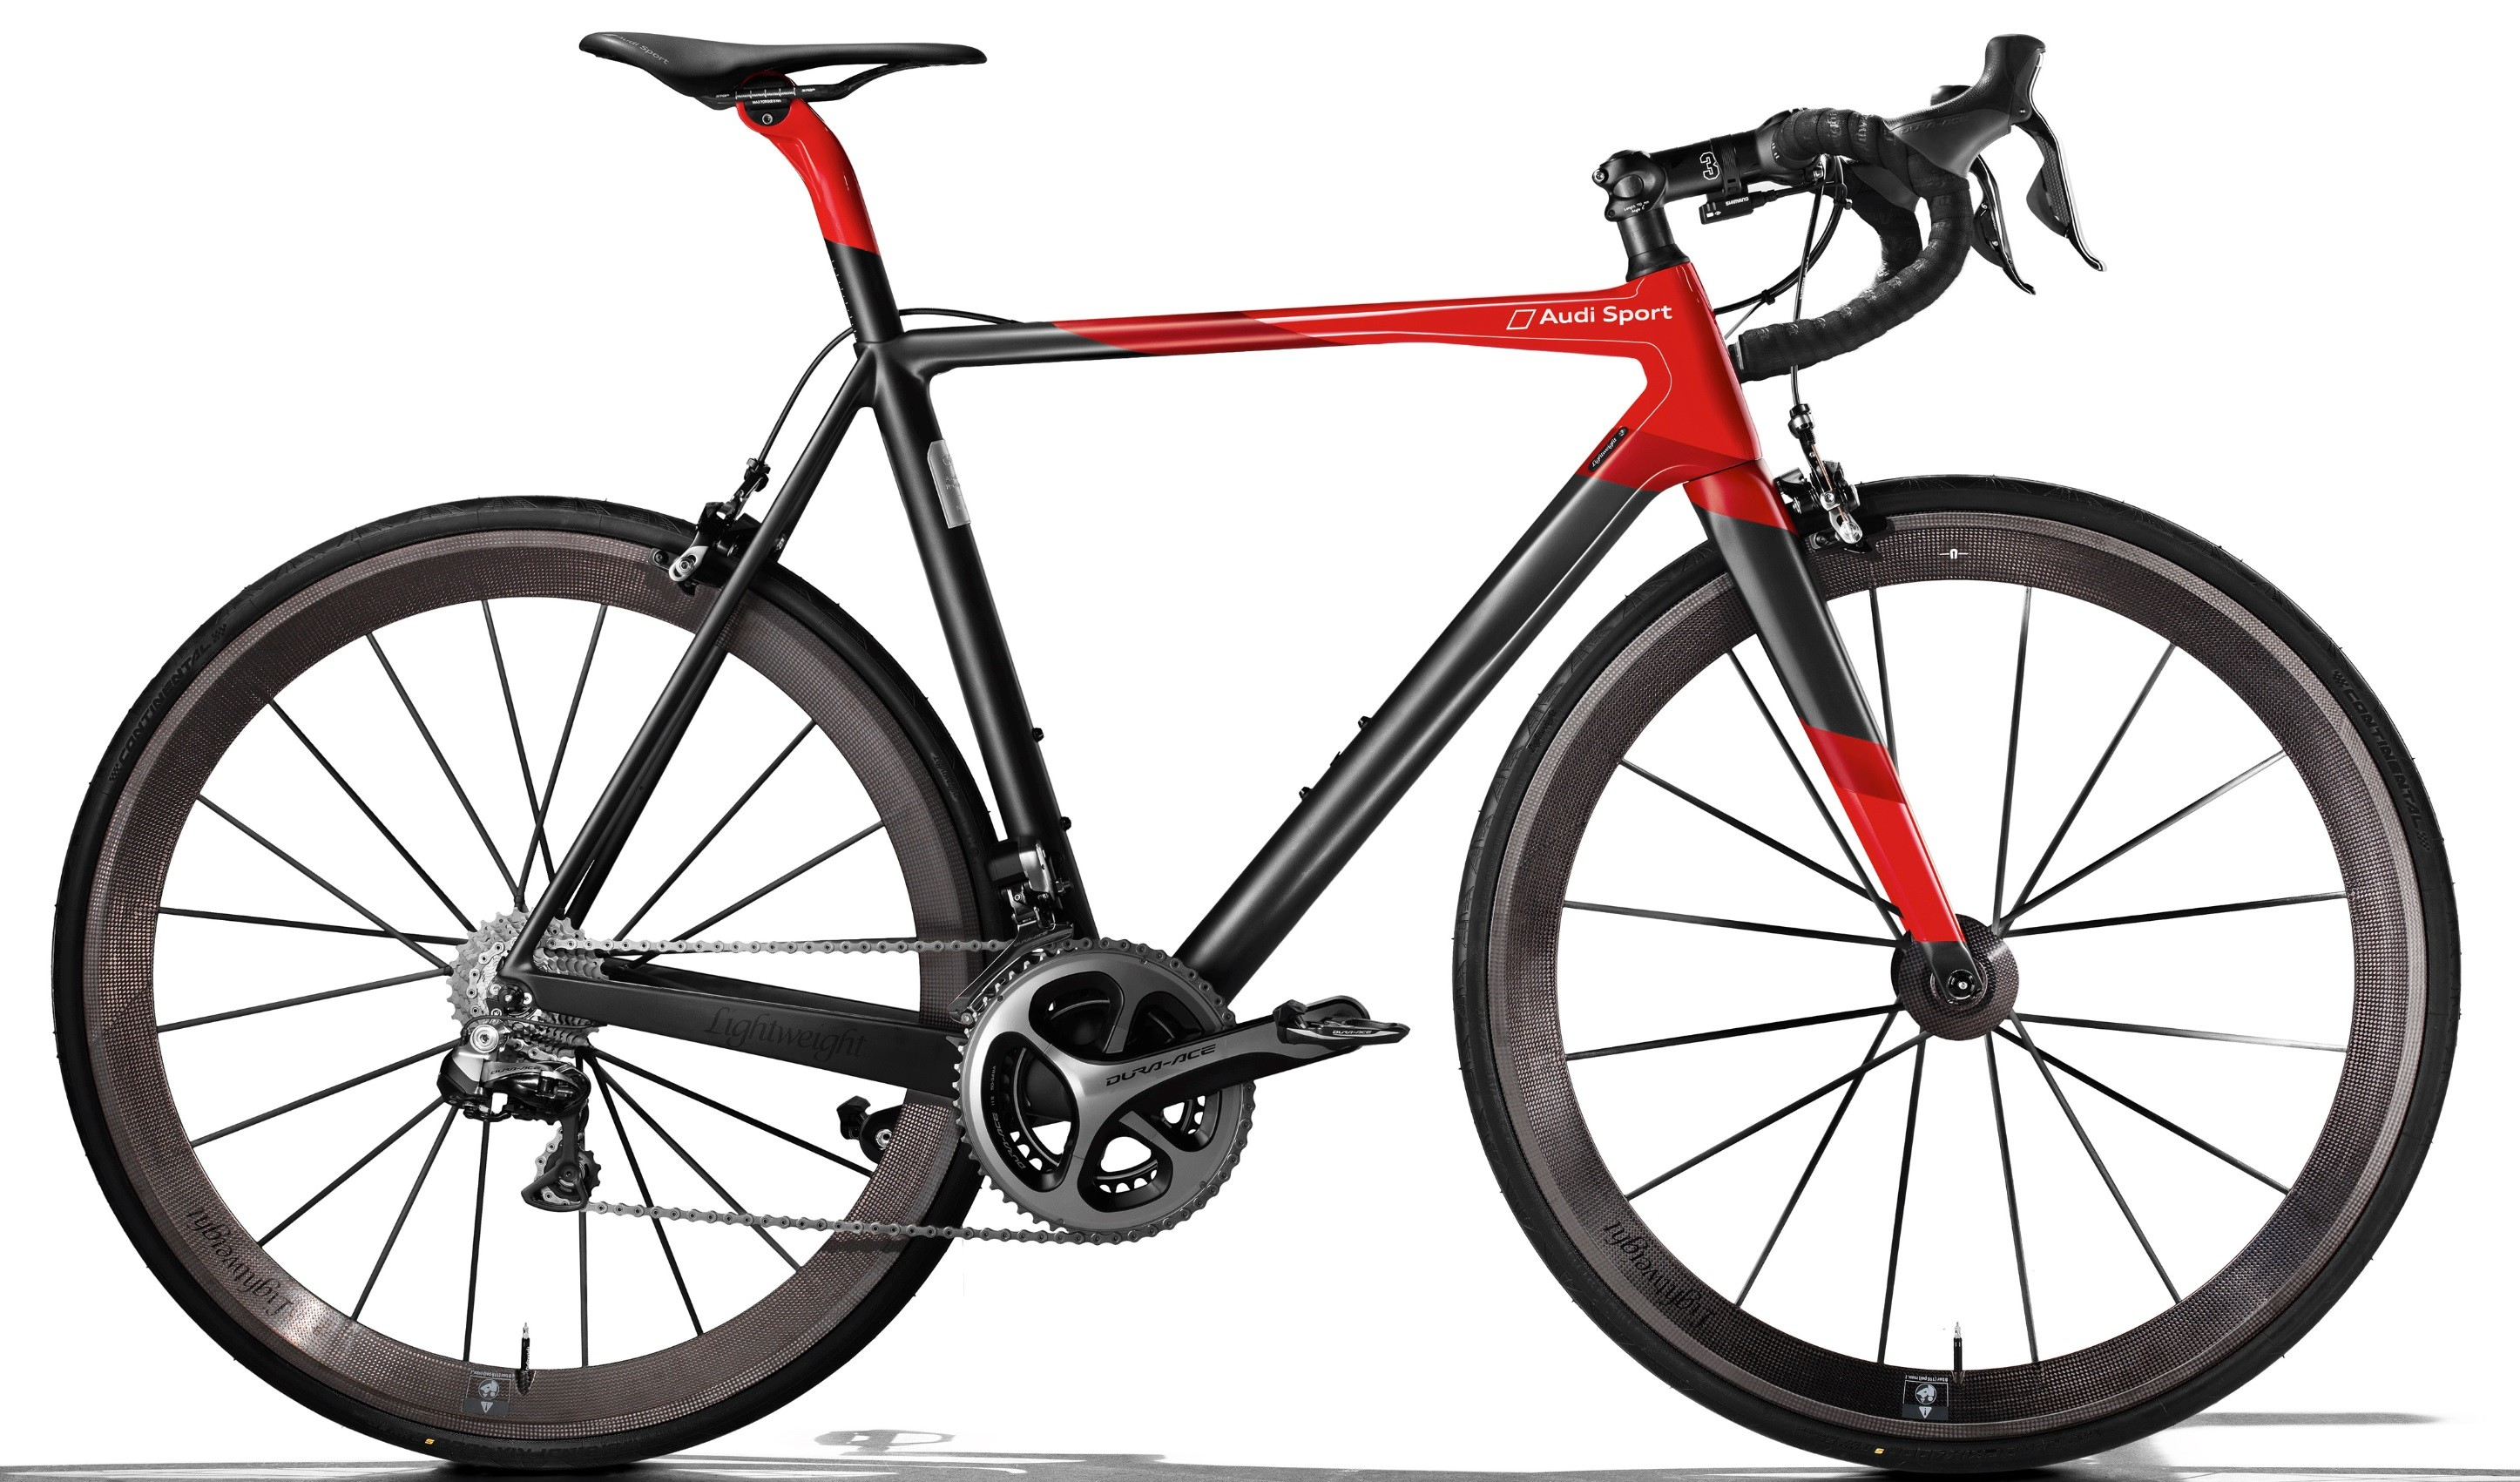 Audi Lightweight Sport Racing bike takes design cues from the German car-makers' Le Mans racers